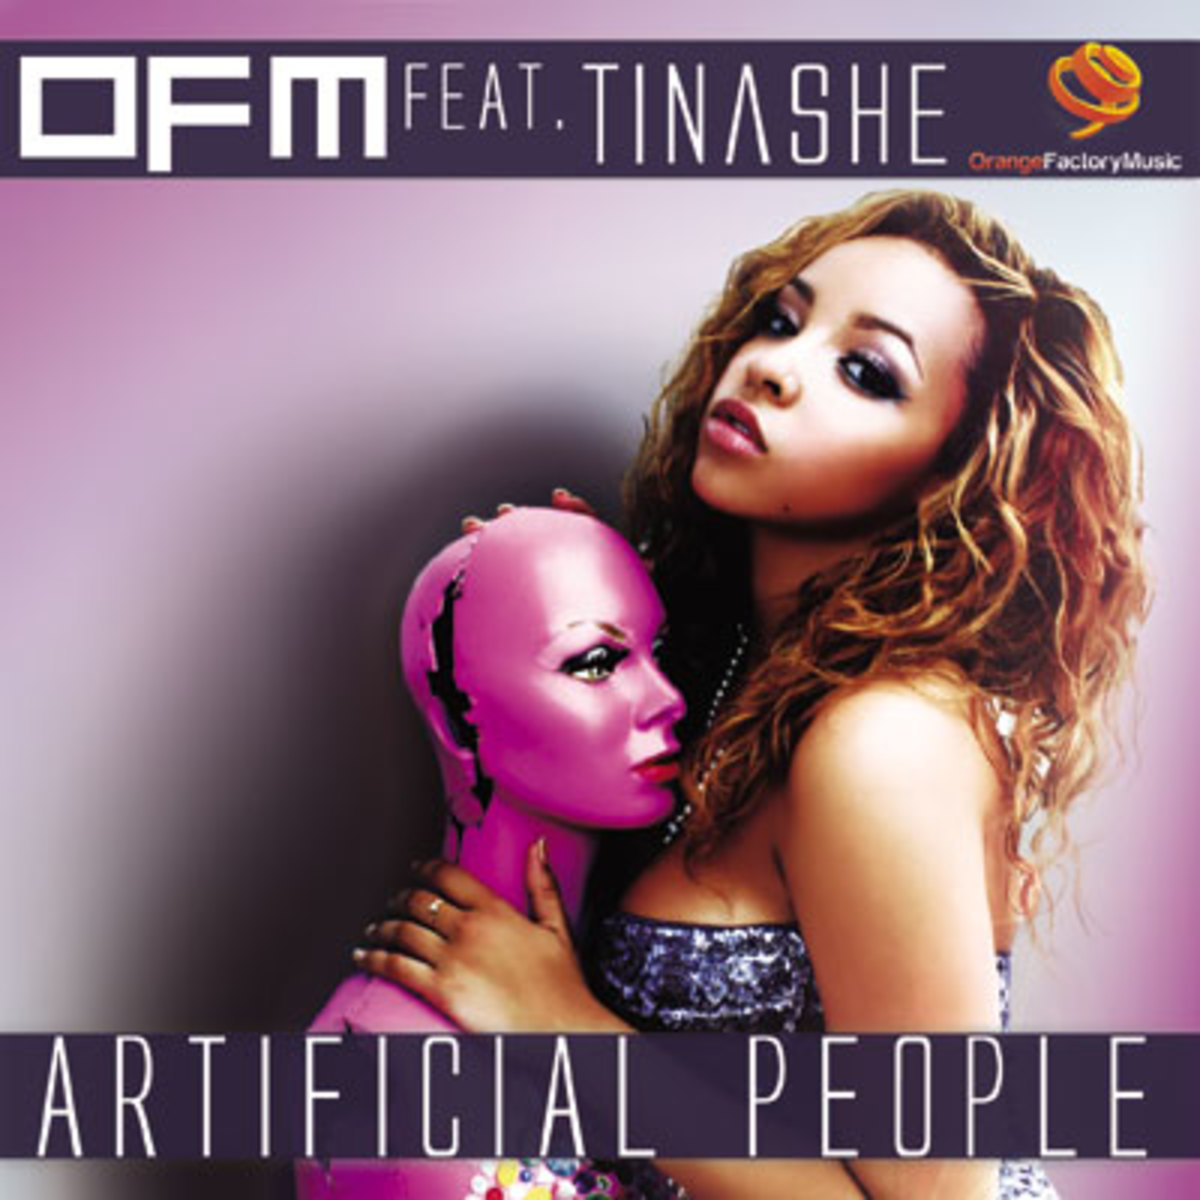 ofm-artificialpeople.jpg